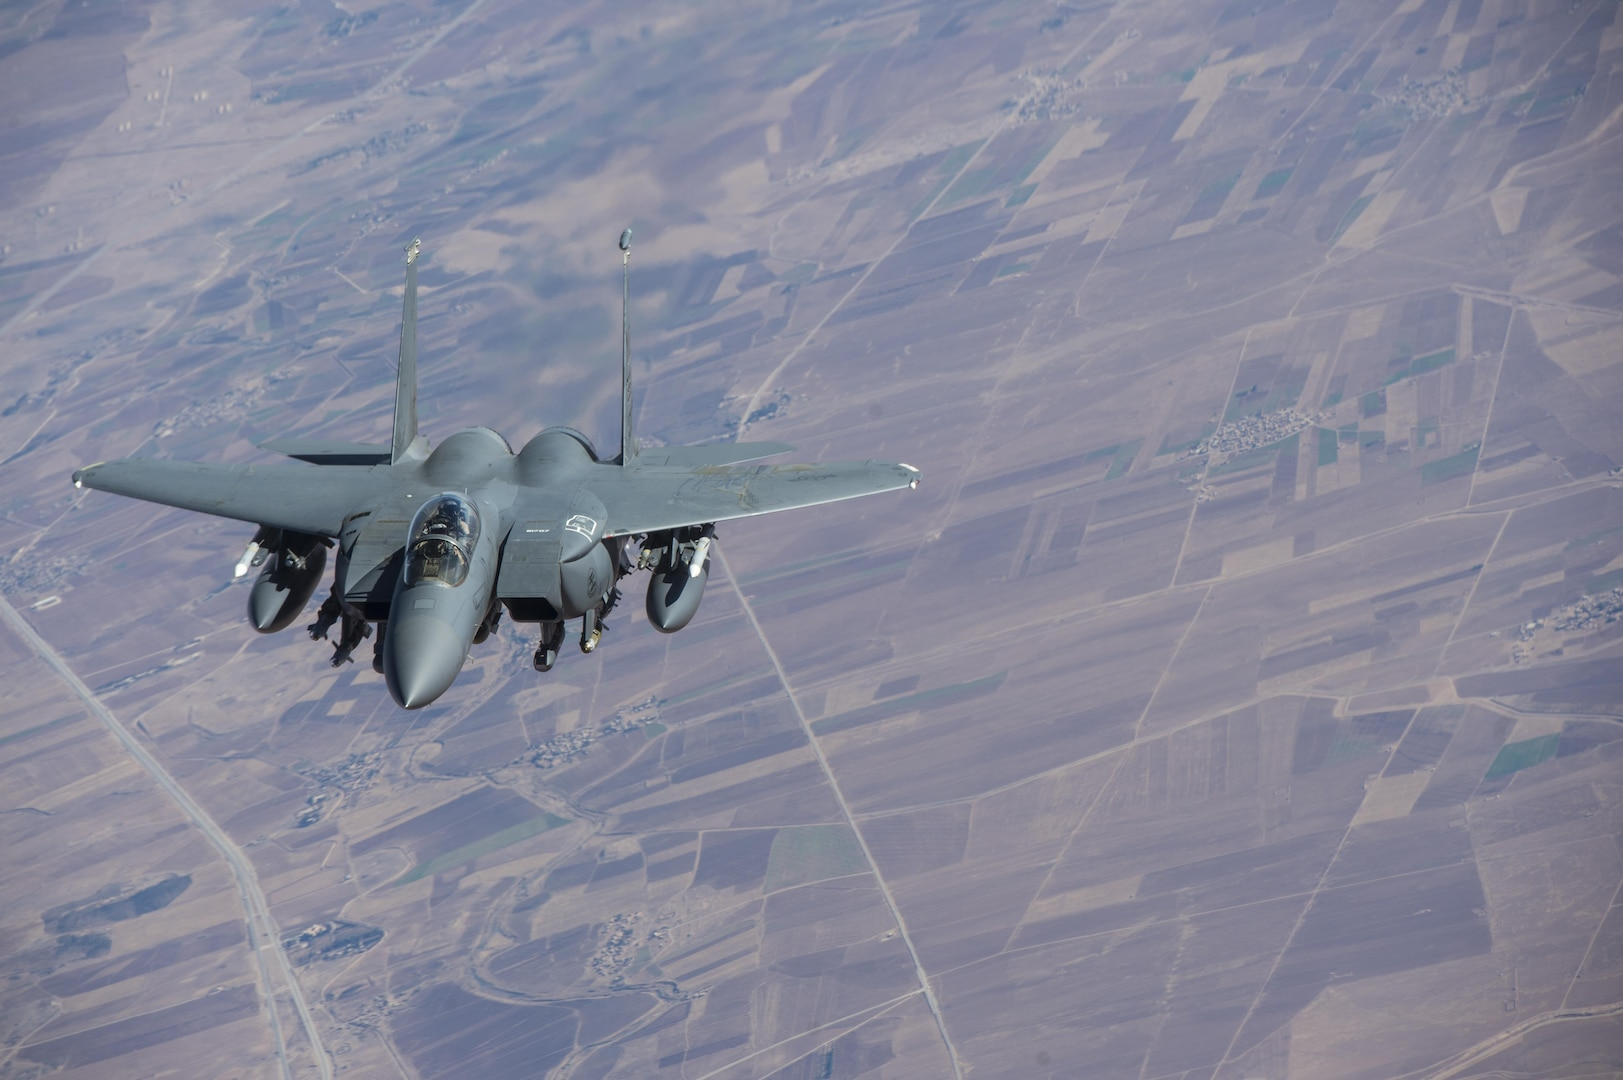 A U.S. Air Force F-15 Strike Eagle approaches a KC-135 Stratotanker in support of a Combined Joint Task Force - Operation Inherent Resolve mission over Iraq Dec. 7, 2016. The KC-135 provides aerial refueling capabilities for the CJTF as it supports the Iraqi Security Forces and the partnered forces in Syria as they work to liberate territory and people under the control of Da'esh. (U.S. Air Force photo by Staff Sgt. Matthew B. Fredericks)